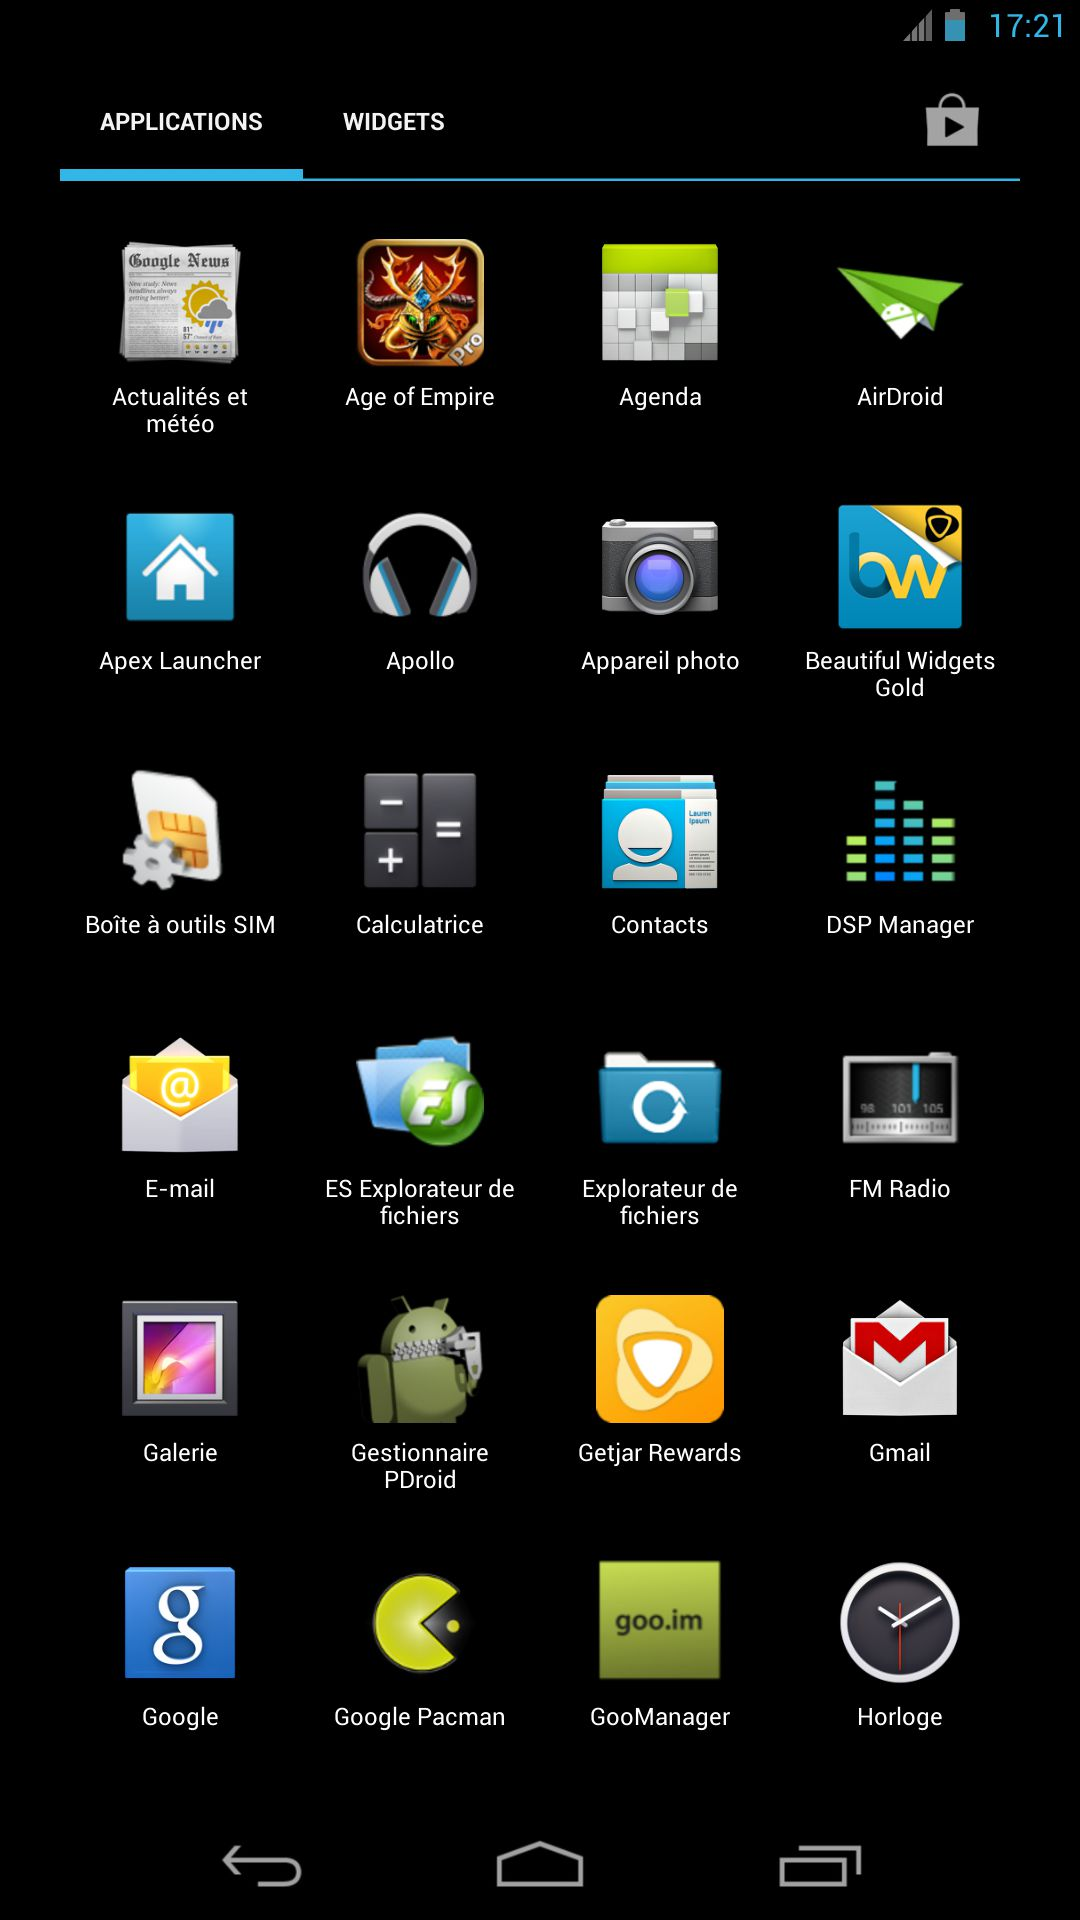 Screenshot_2013-04-22-17-21-53